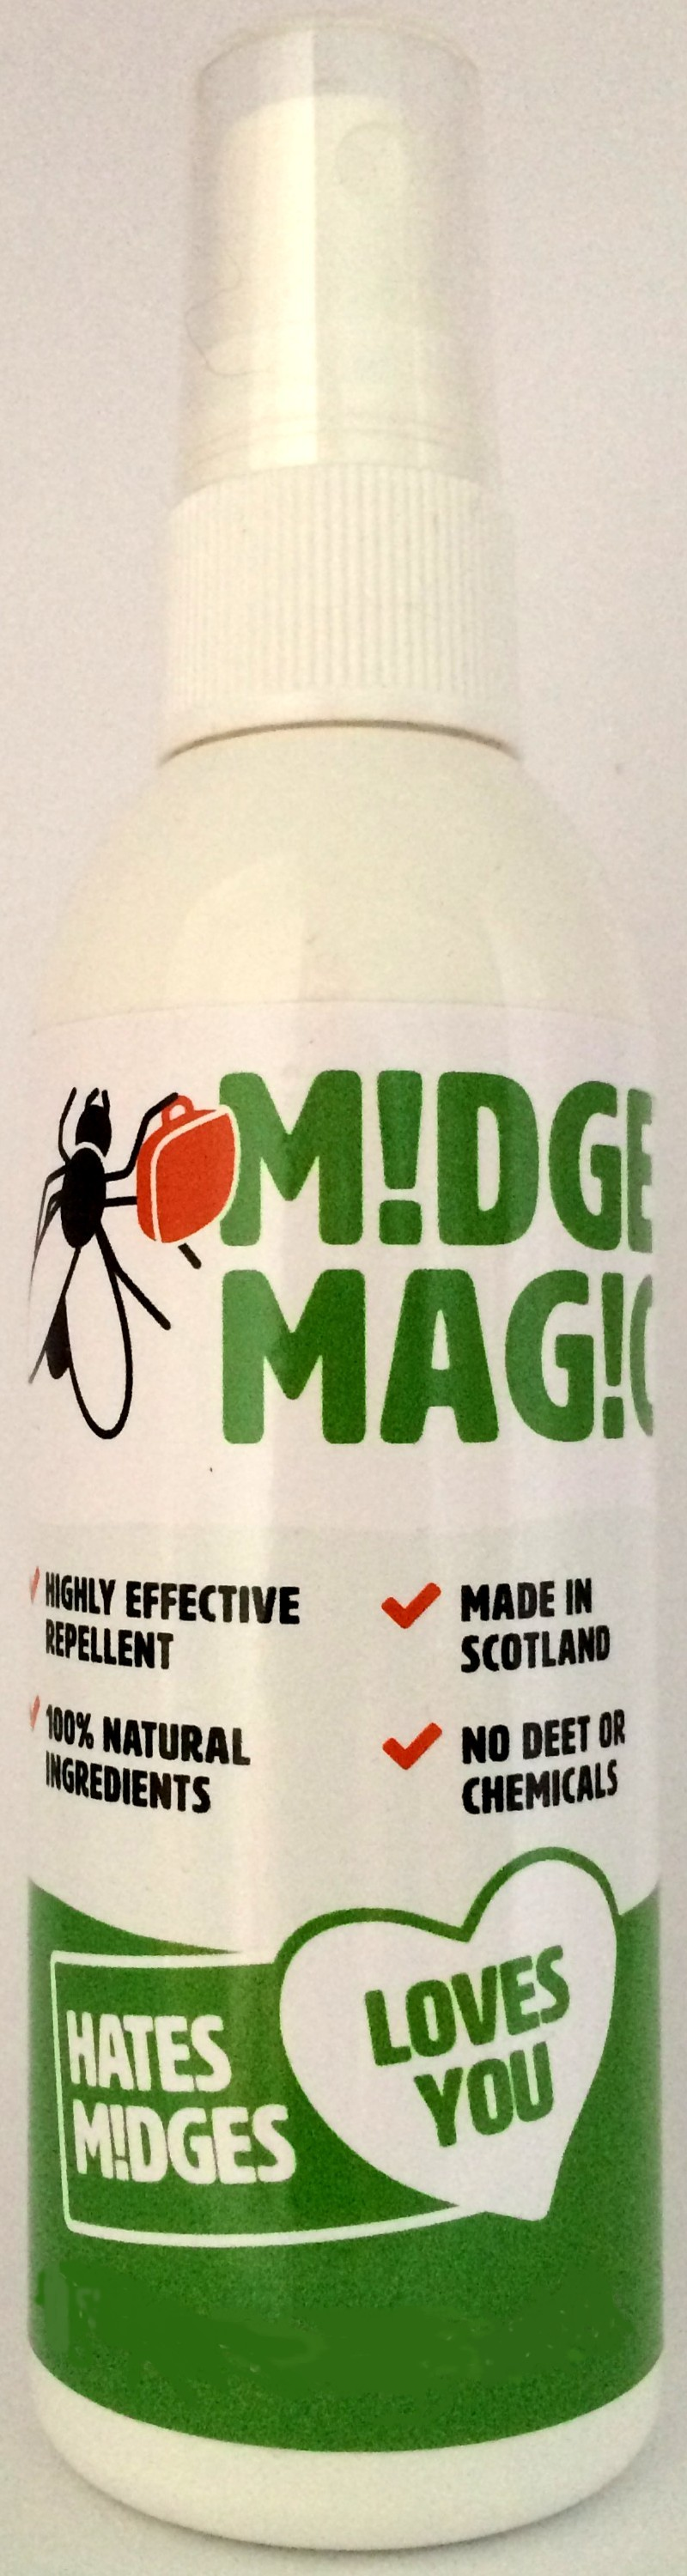 White Large Totally Herby Midge Netting